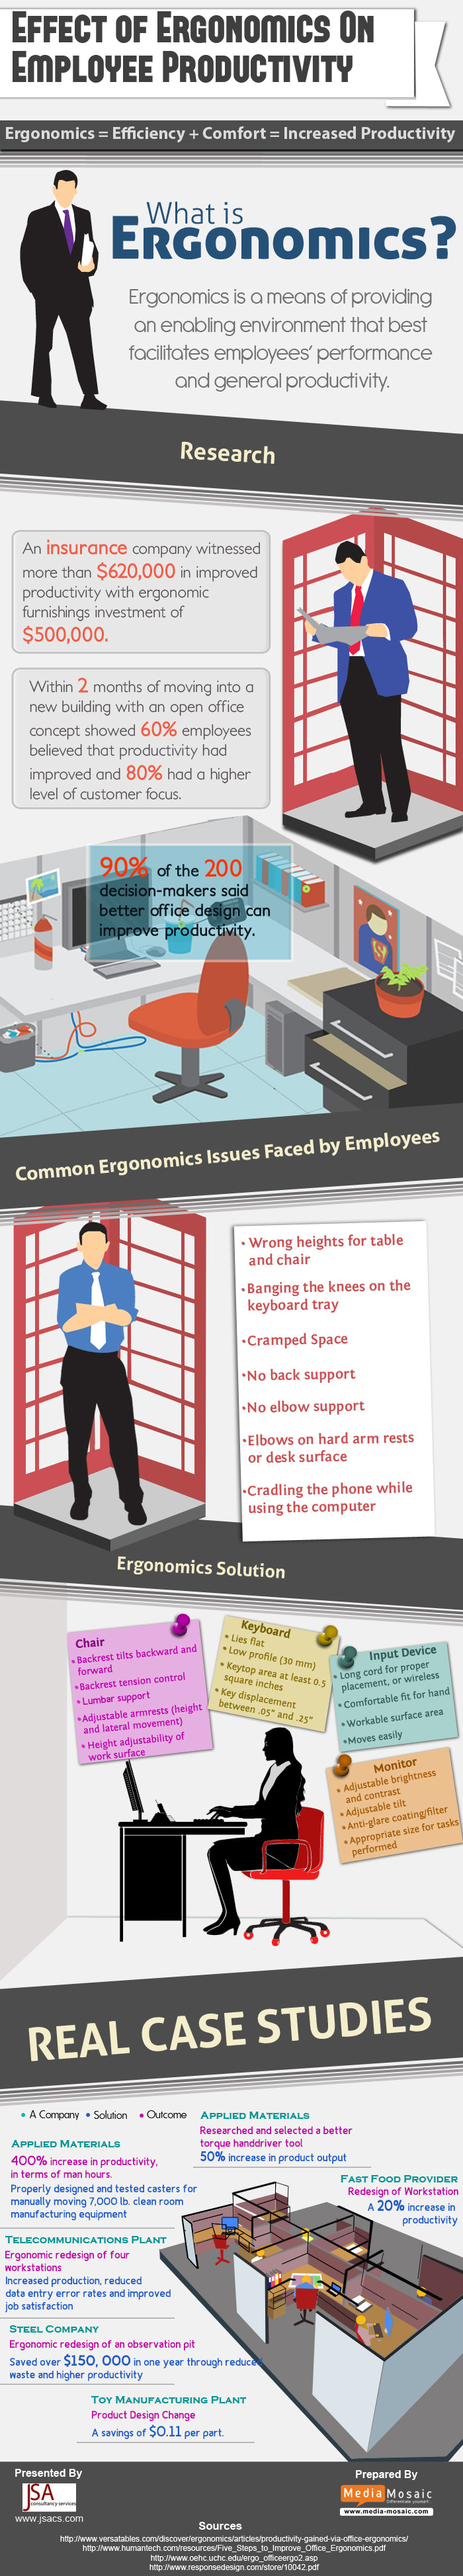 Effects of Ergonomics